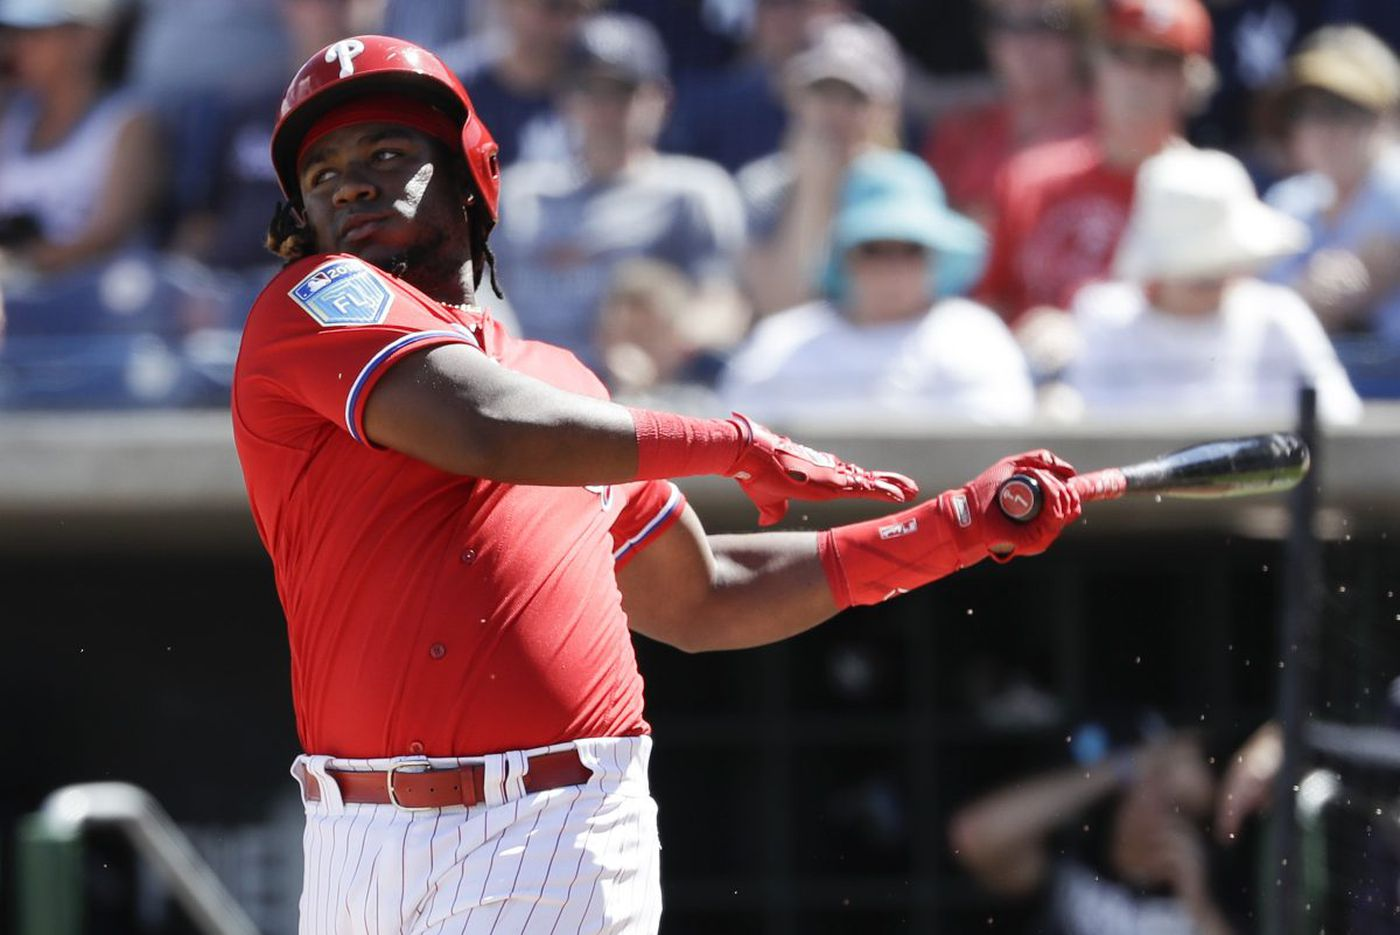 The Phillies have altered Maikel Franco's batting stance